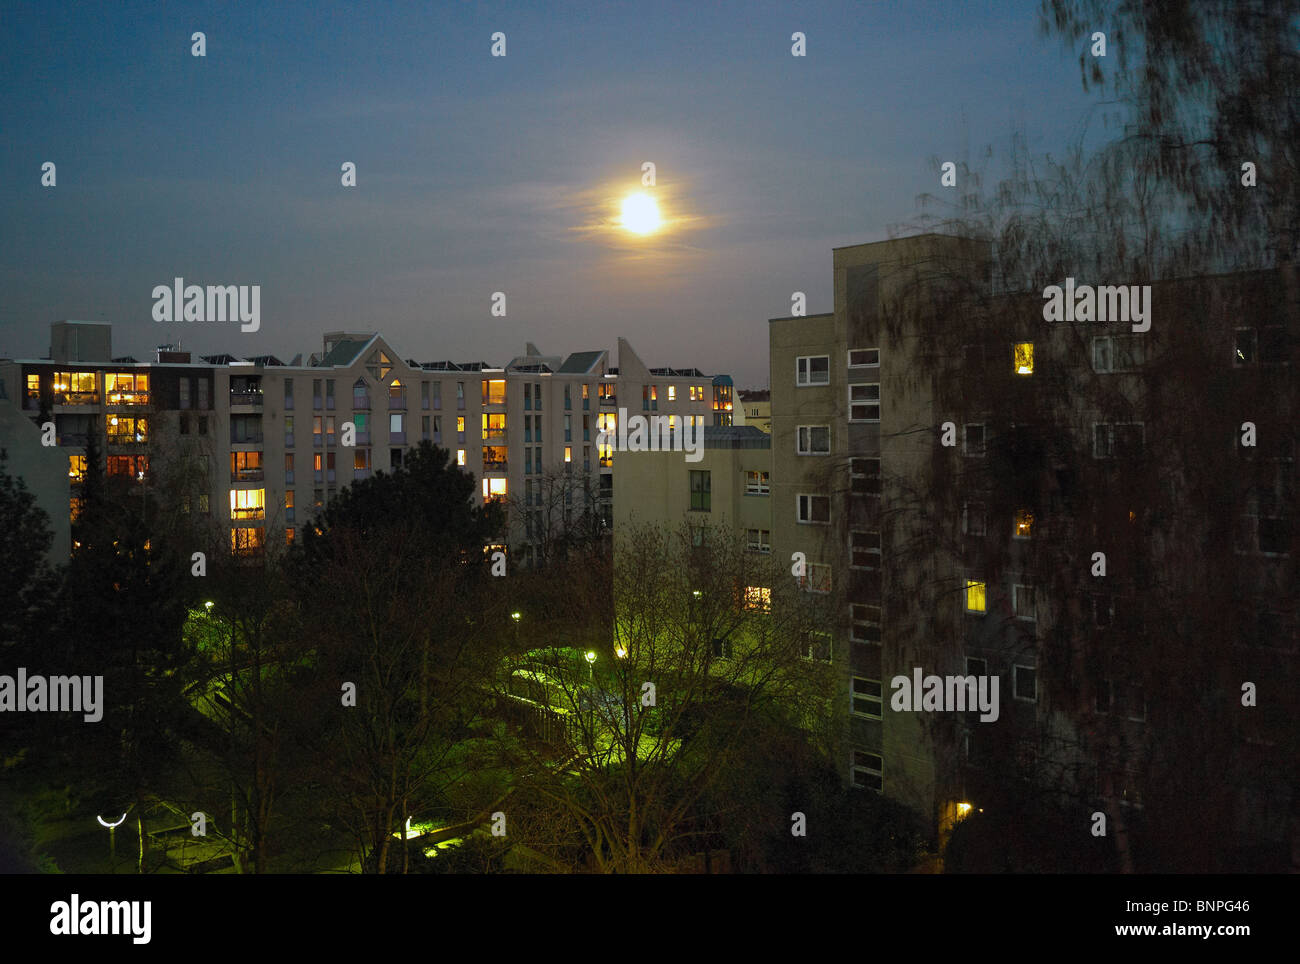 The Moon over an apartment building in Tempelhof, Berlin, Germany - Stock Image